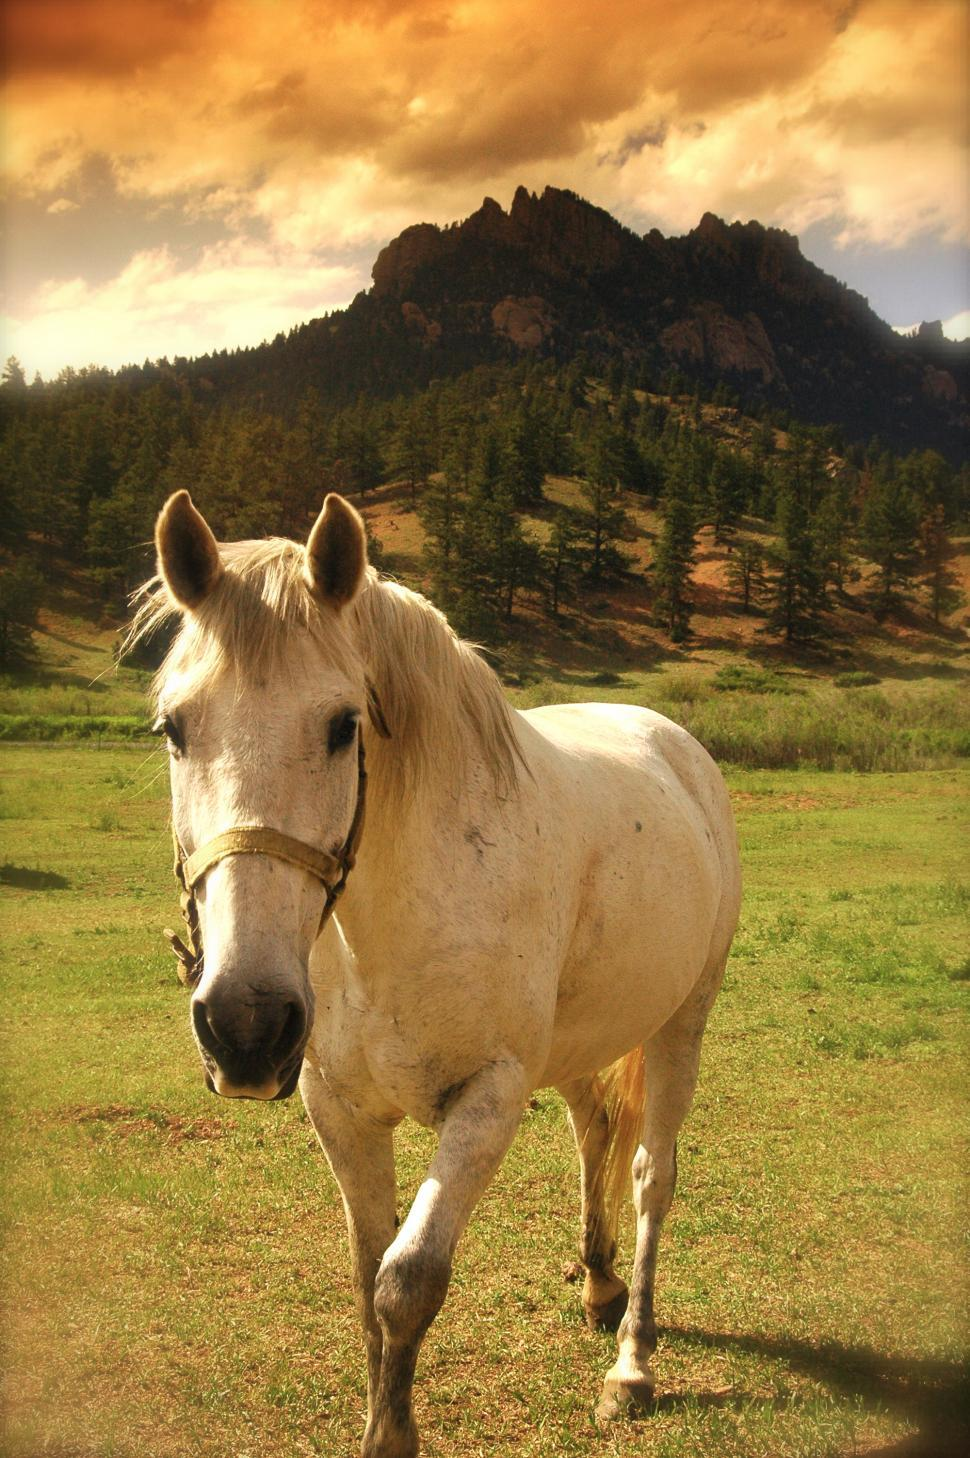 Download Free Stock HD Photo of Horse in the Rocky Mountains of Colorado Online